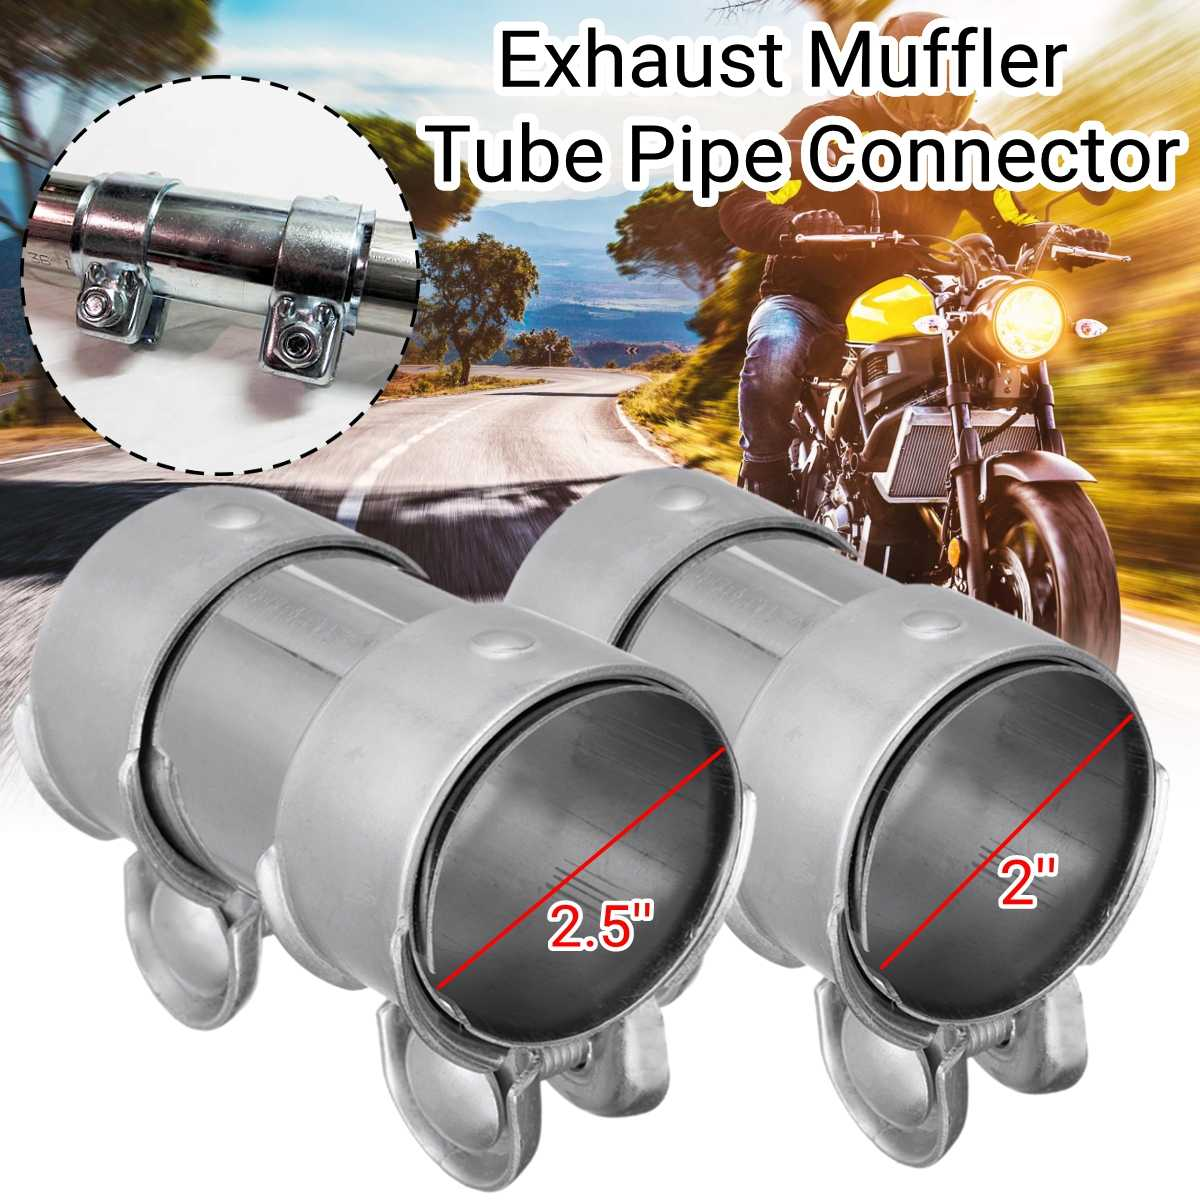 2 inch 2.5 inch Exhaust Muffler Tube Pipe Connector Joiner Sleeve Clamp Adjustable Stainless Steel Kit DIY Tool Car Accessories